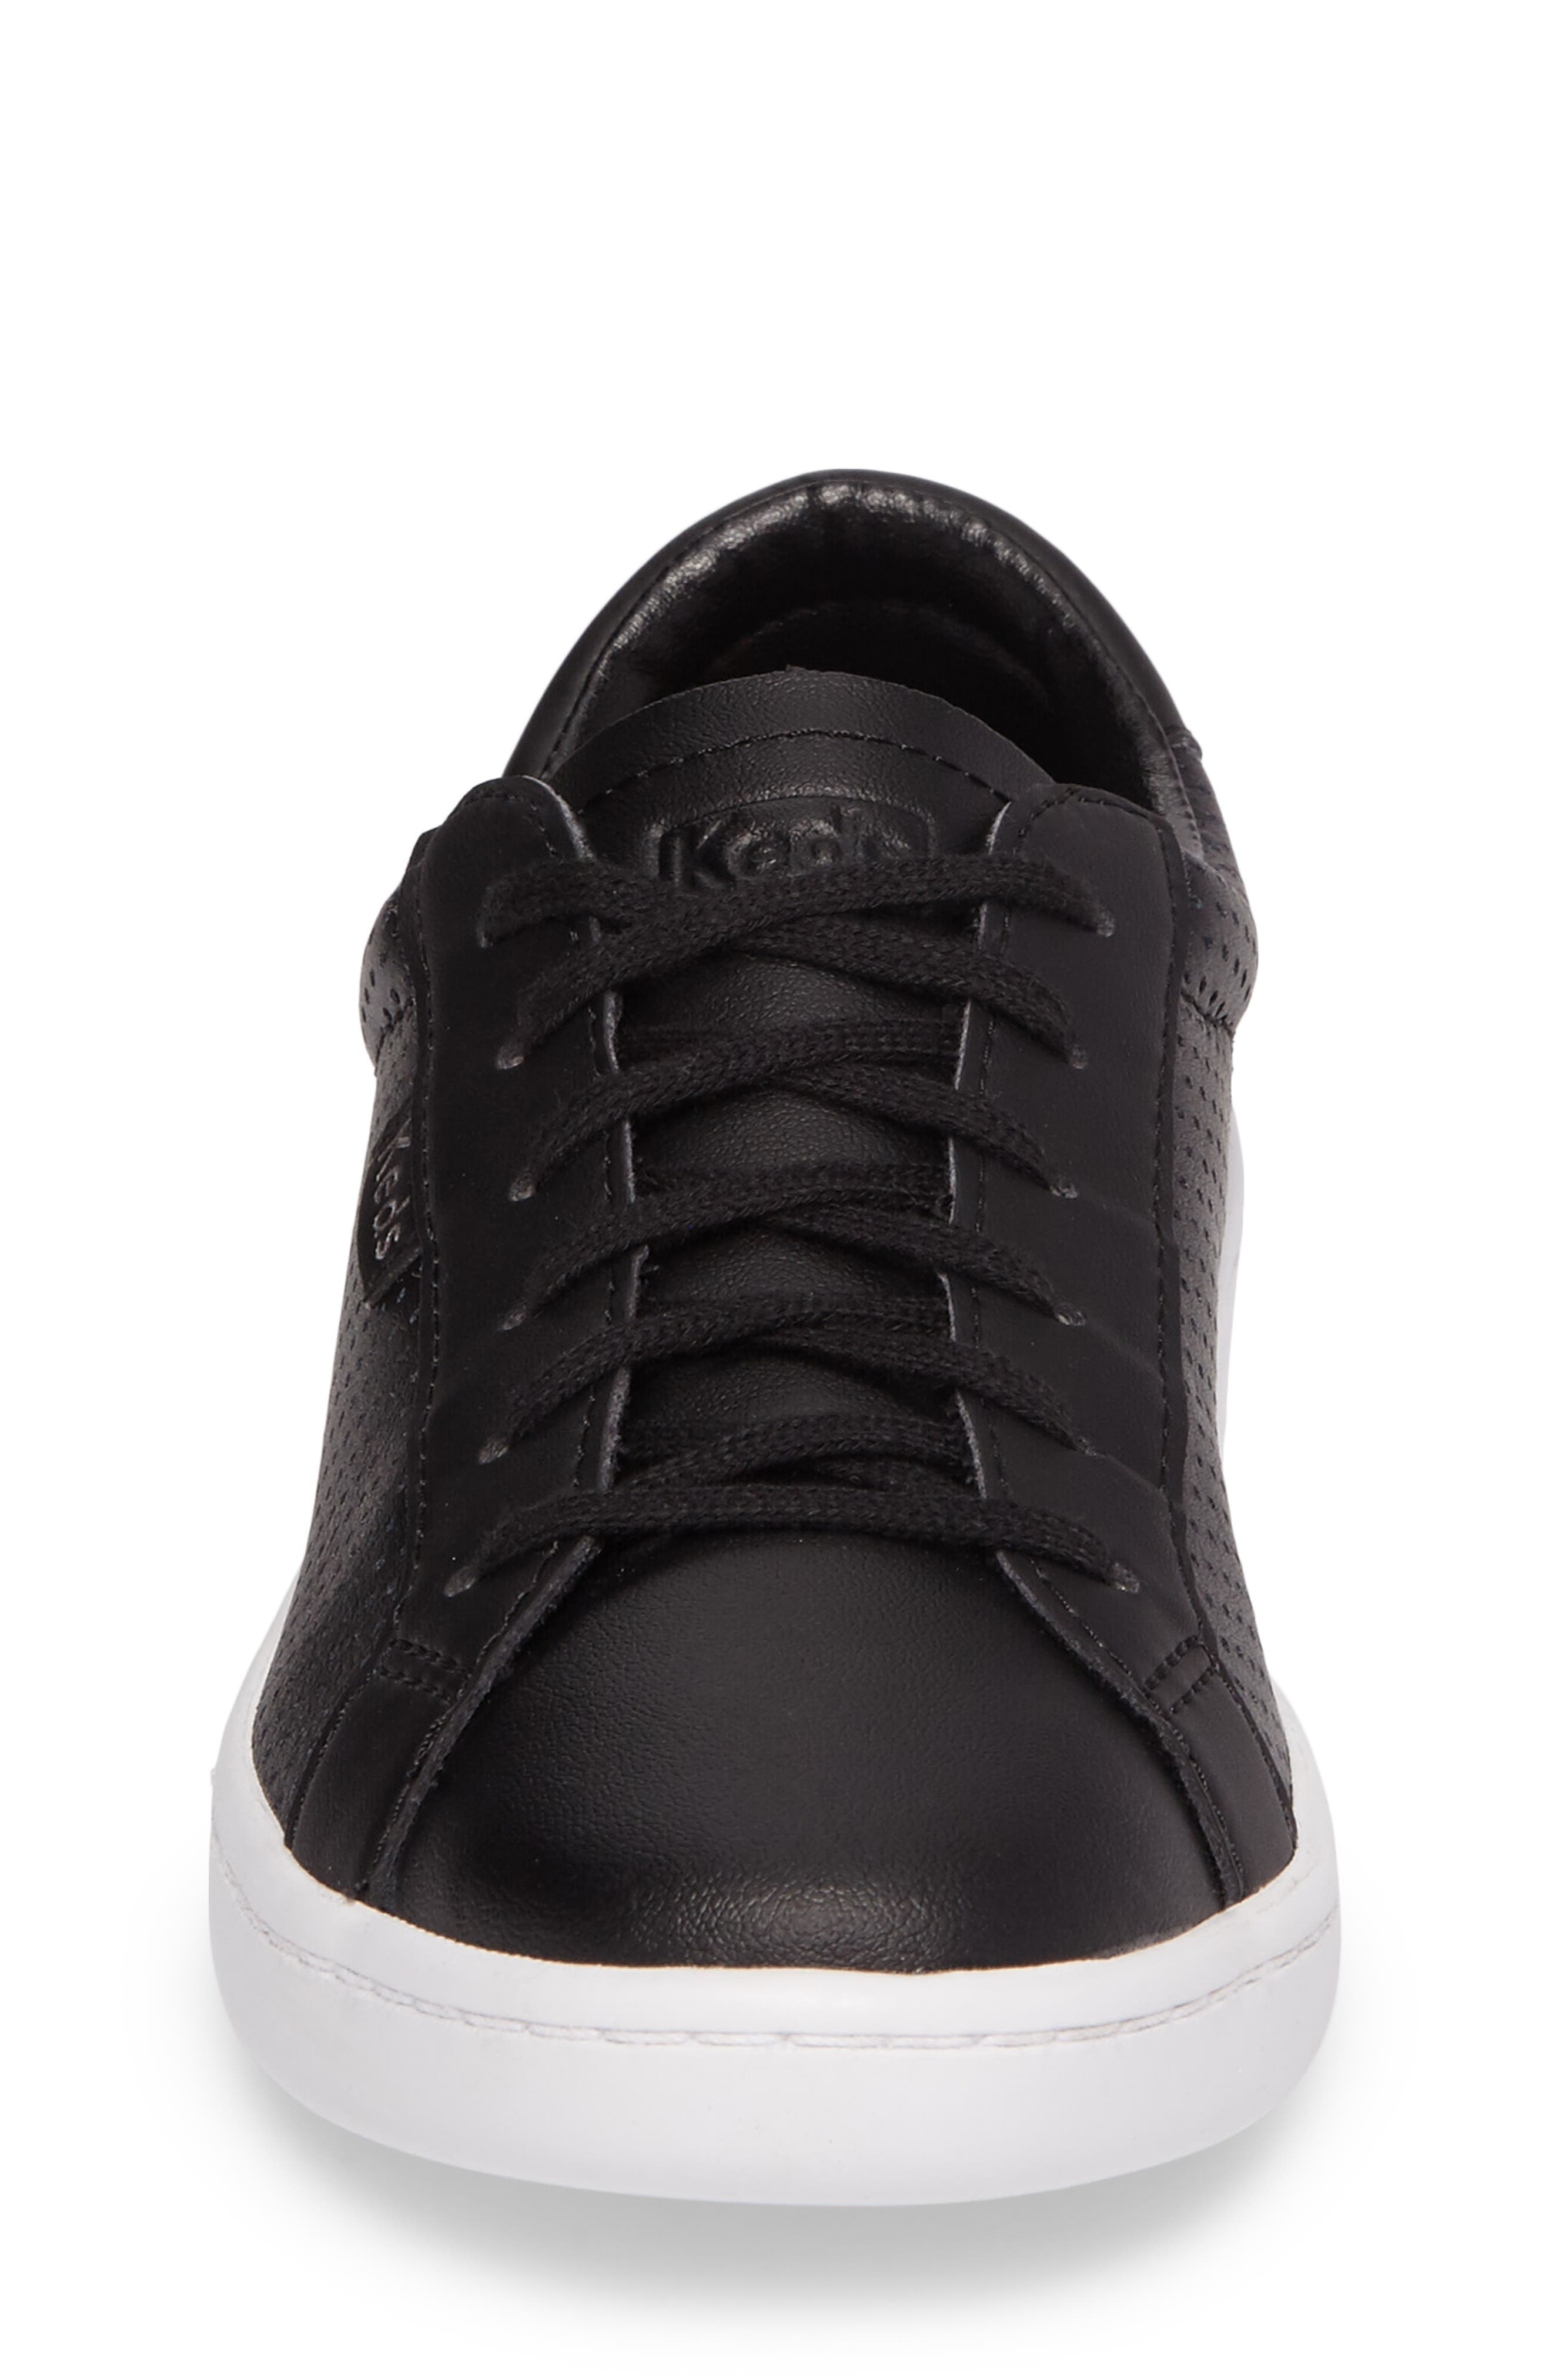 Alternate Image 4  - Keds® Ace Perforated Low Top Sneaker (Toddler, Little Kid & Big Kid)